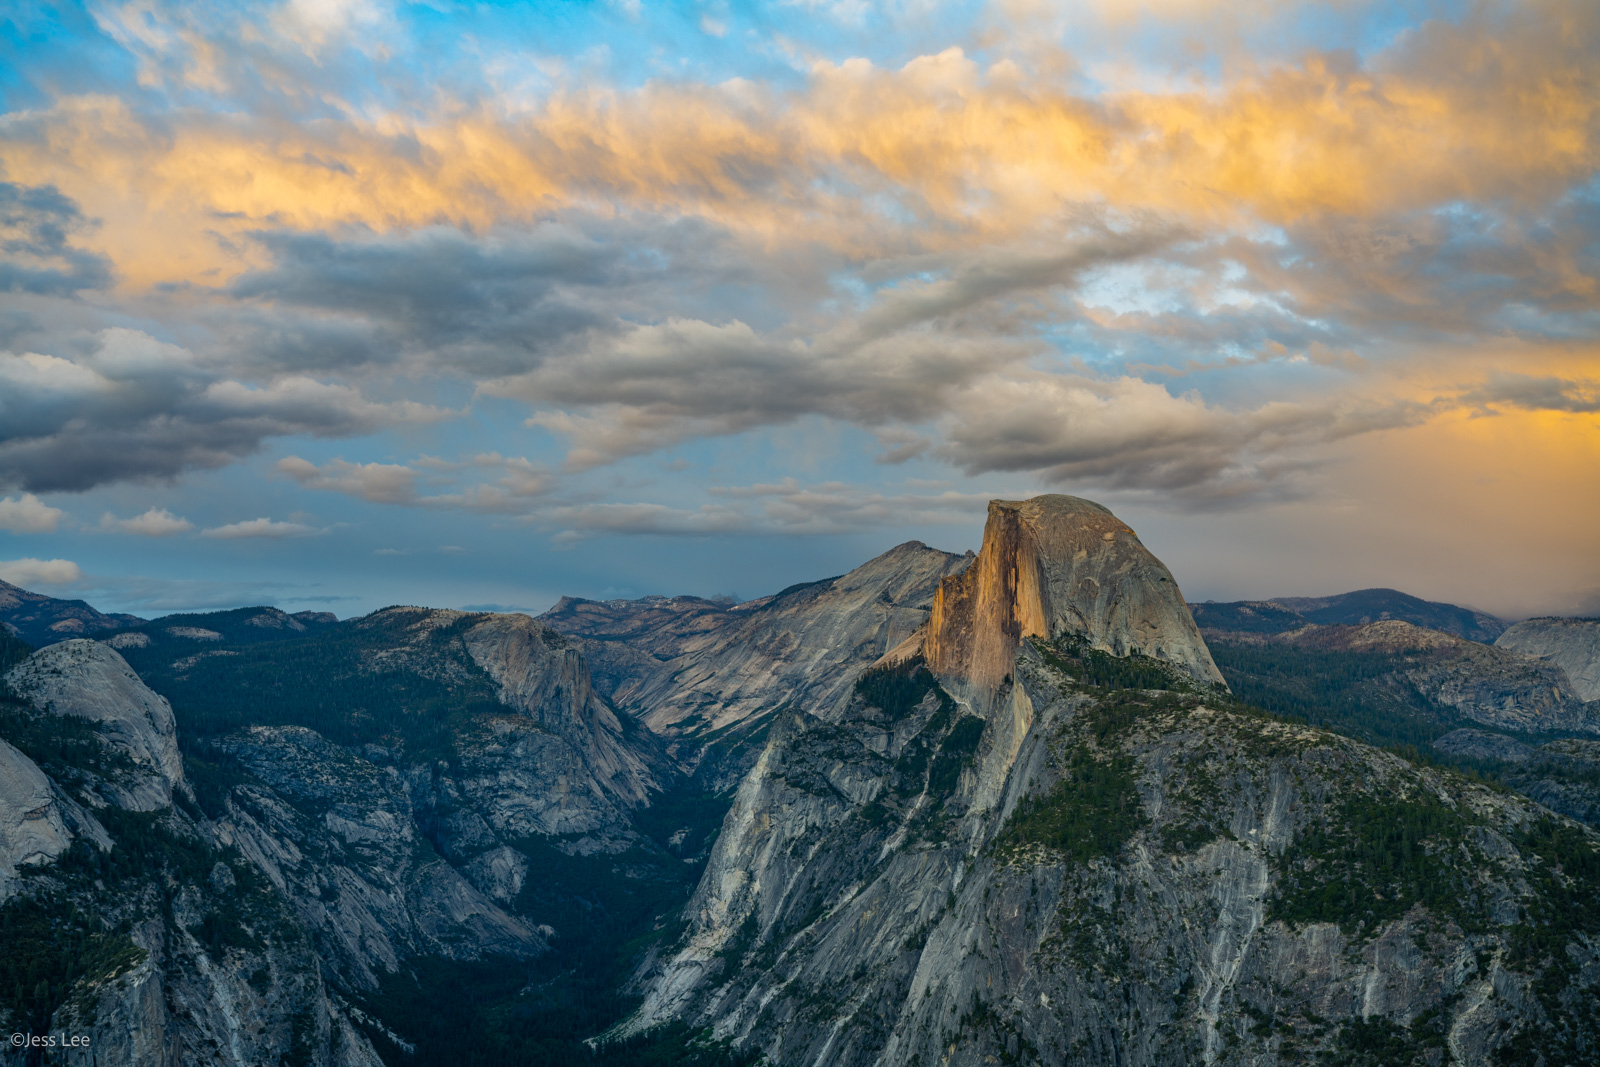 Fine Art Limited Edition Photography Print of Half Dome Sunset. California Landscape Print of Yosemite valley.This is part of...